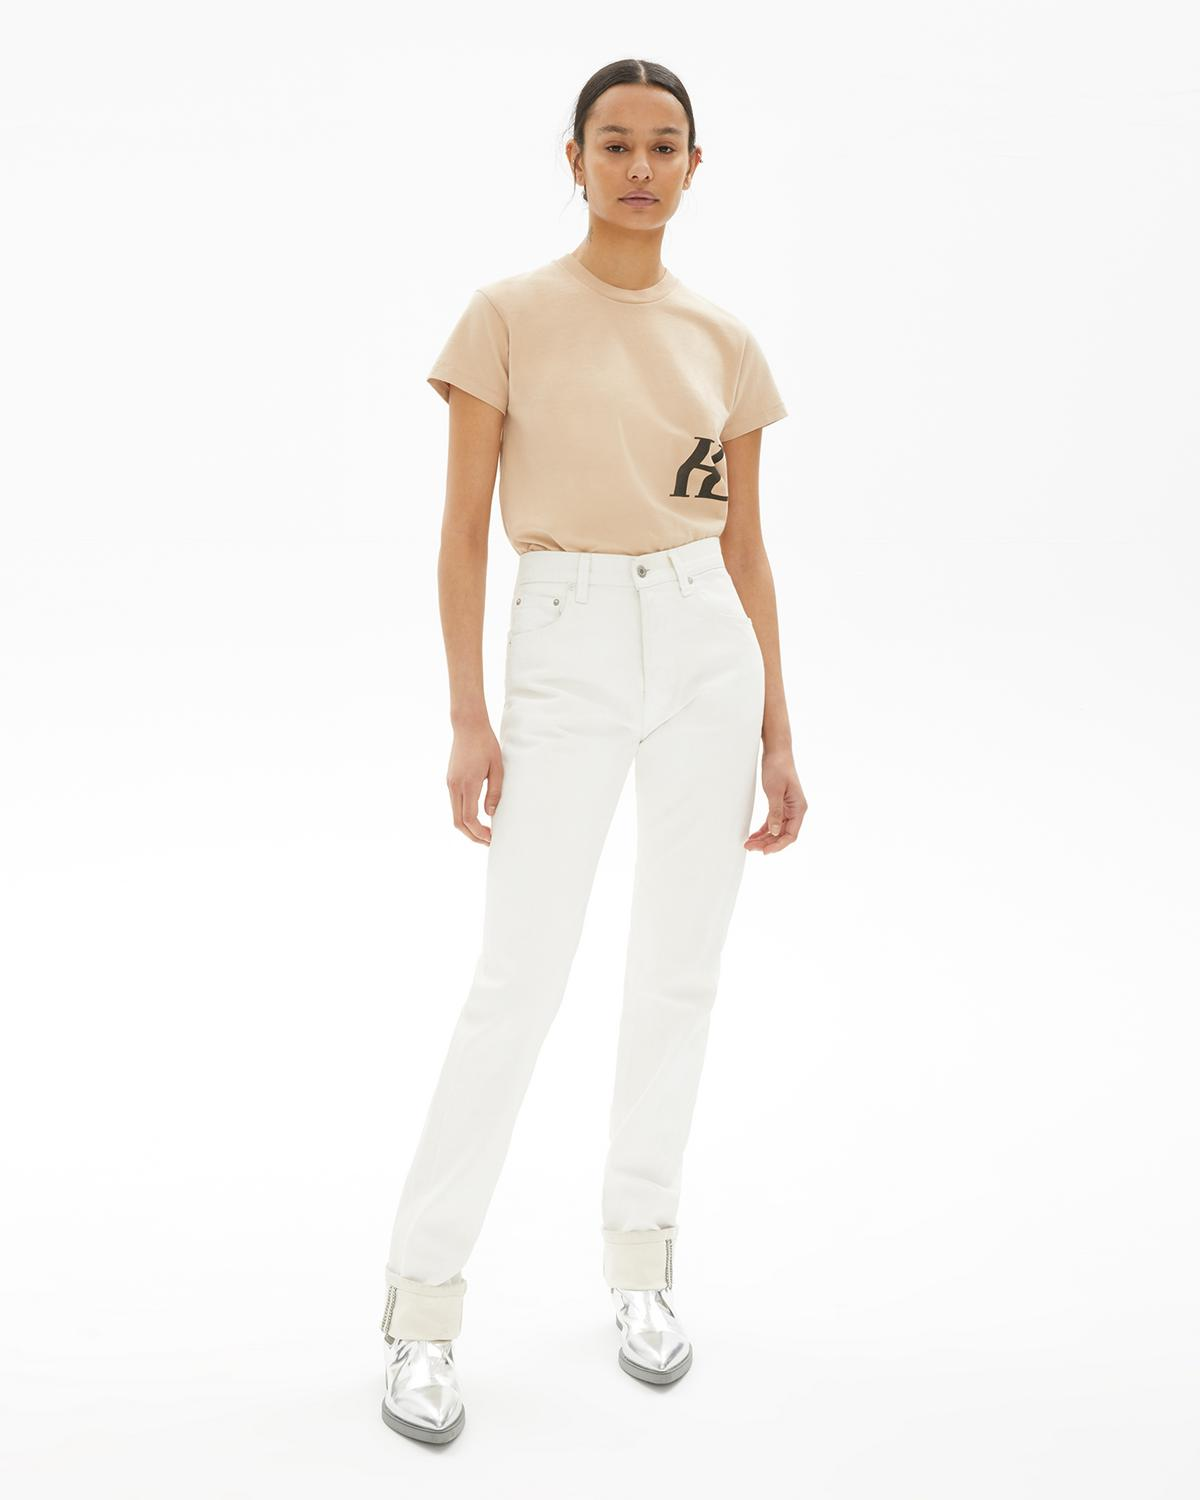 Masc Hi Straight Jeans In White by Helmut Lang, available on helmutlang.com for $128 Kim Kardashian Pants Exact Product